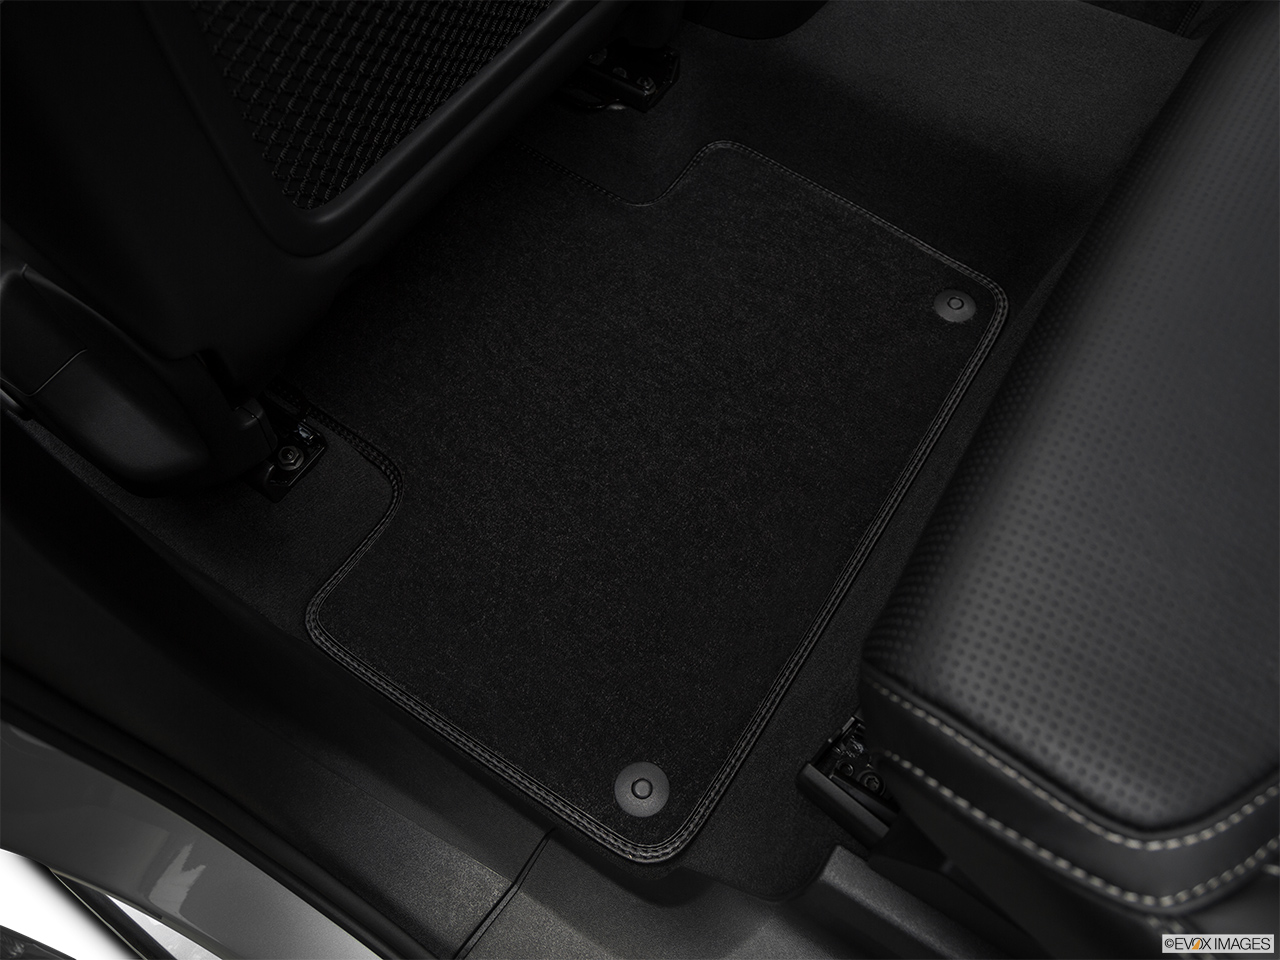 2019 Volvo XC90  T6 Inscription Rear driver's side floor mat. Mid-seat level from outside looking in.